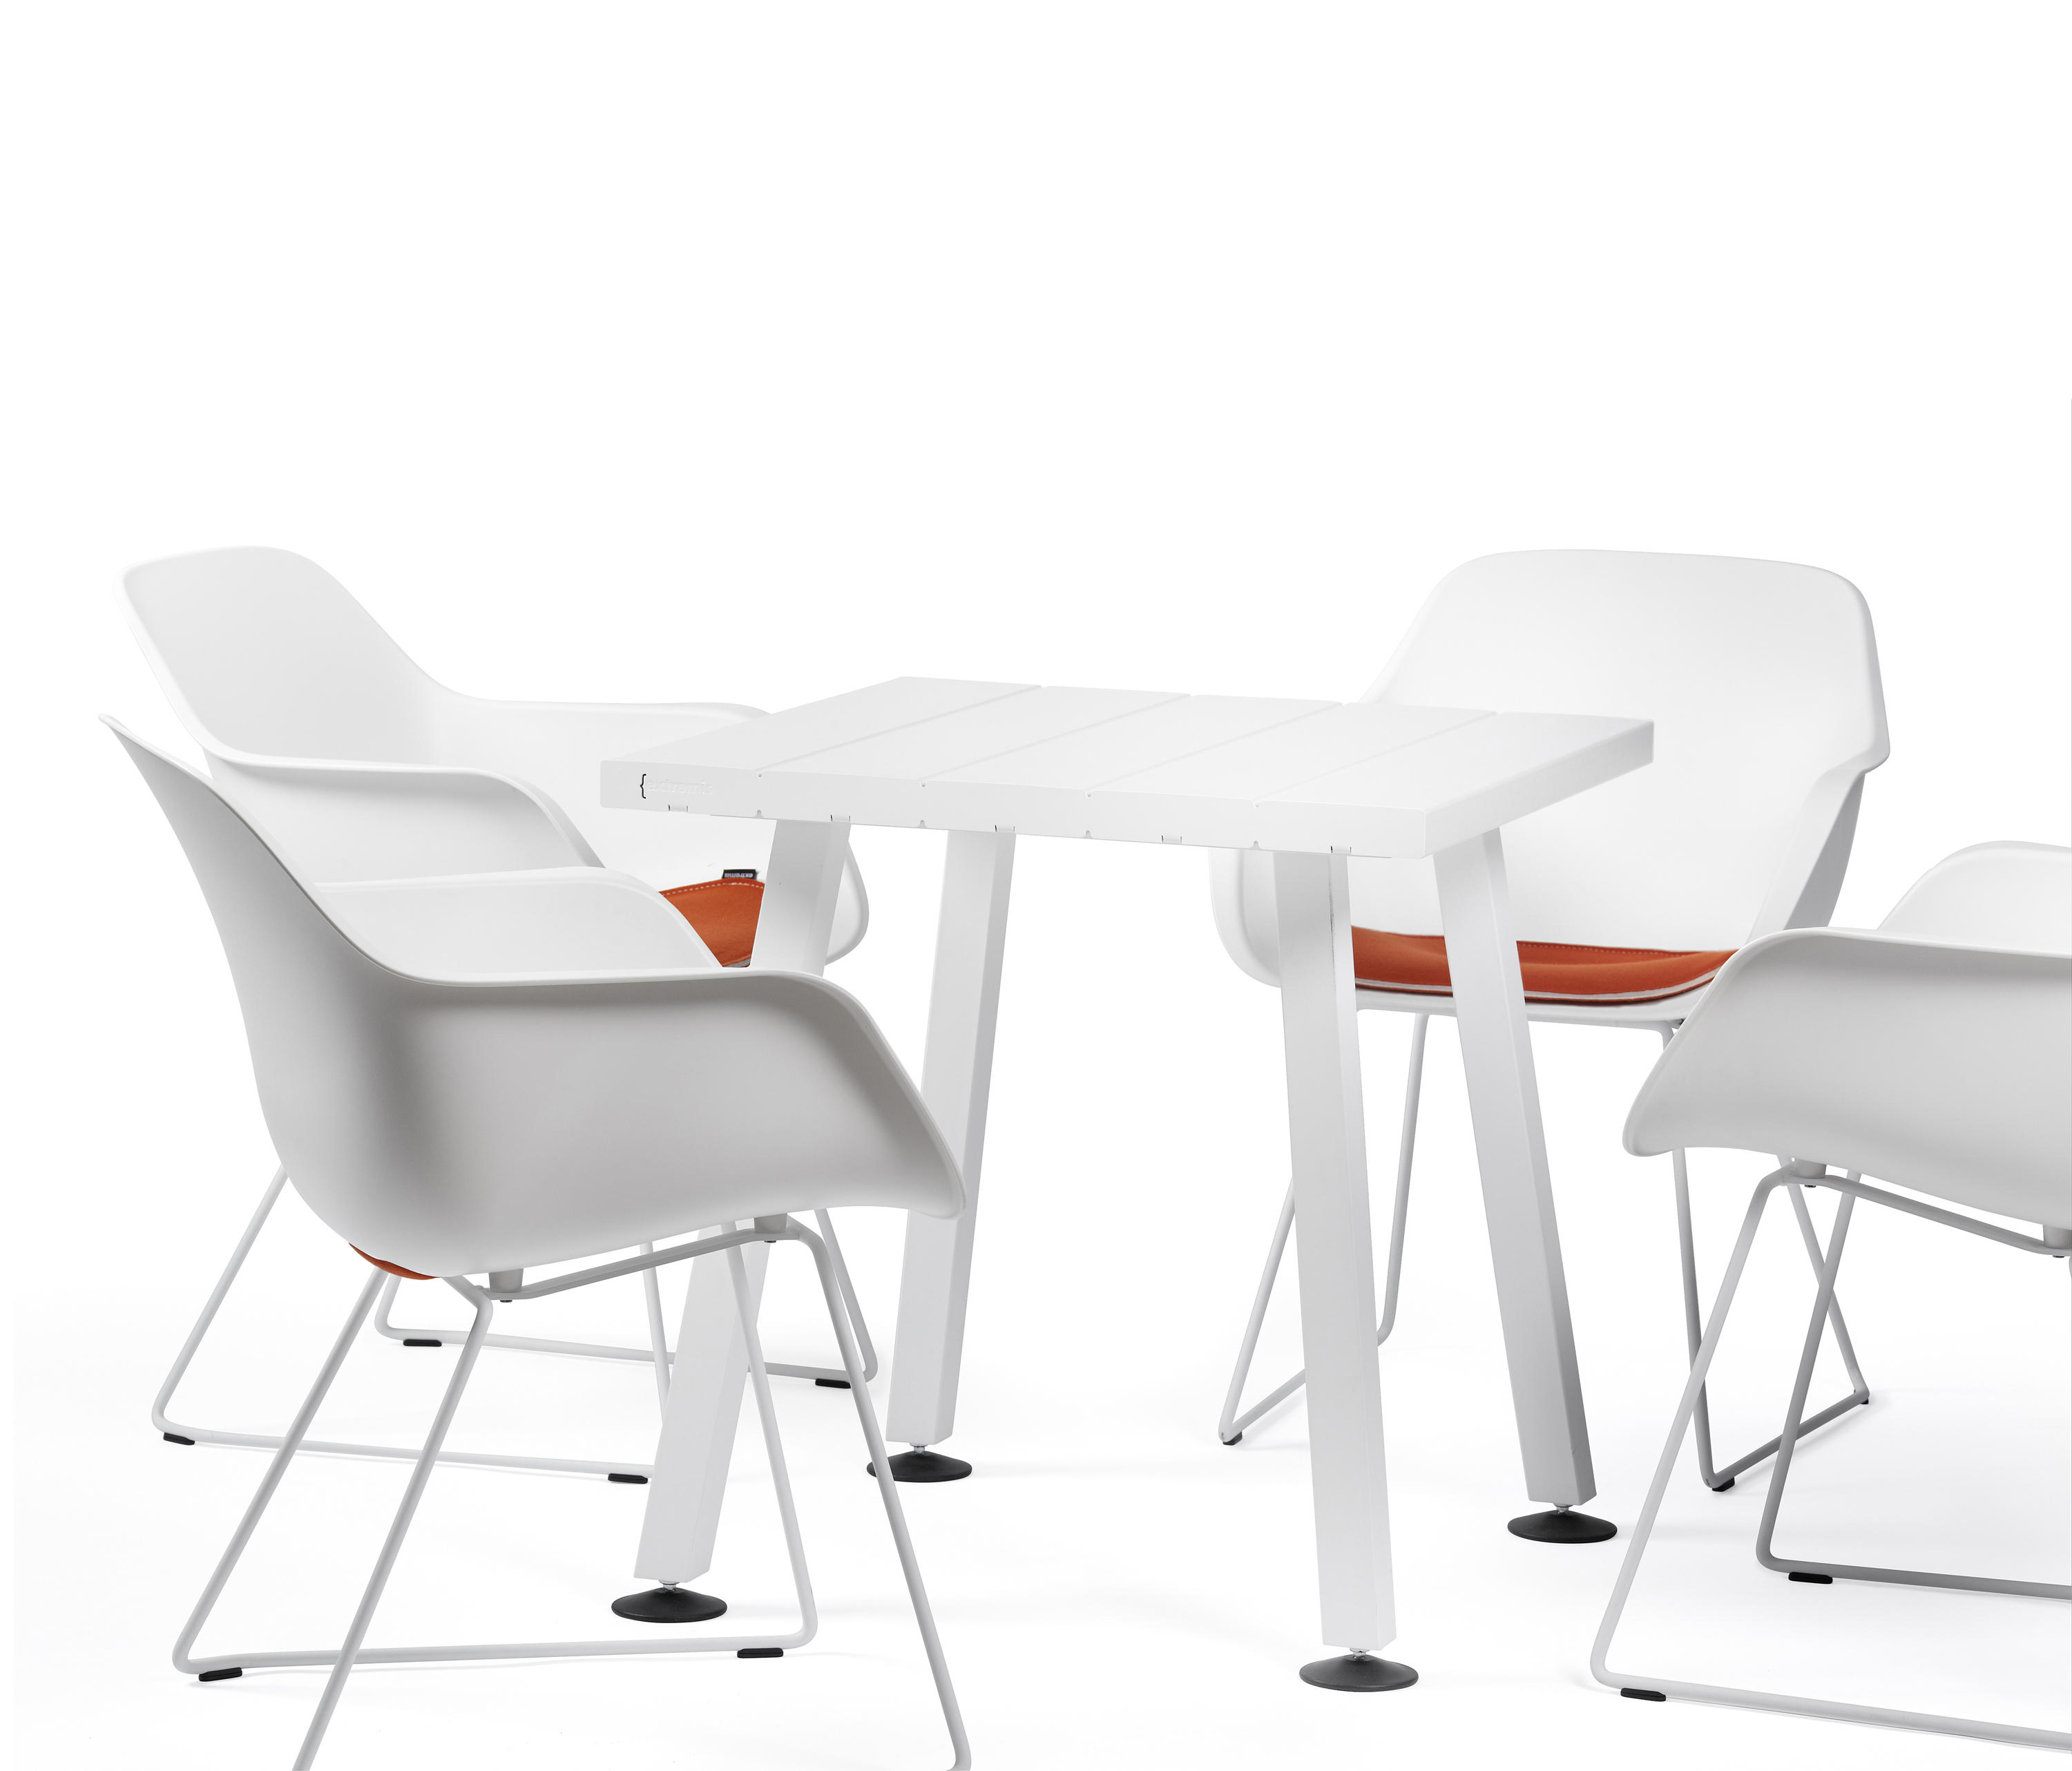 CAPTAIN\'S SLIDING CHAIR - Chairs from extremis | Architonic